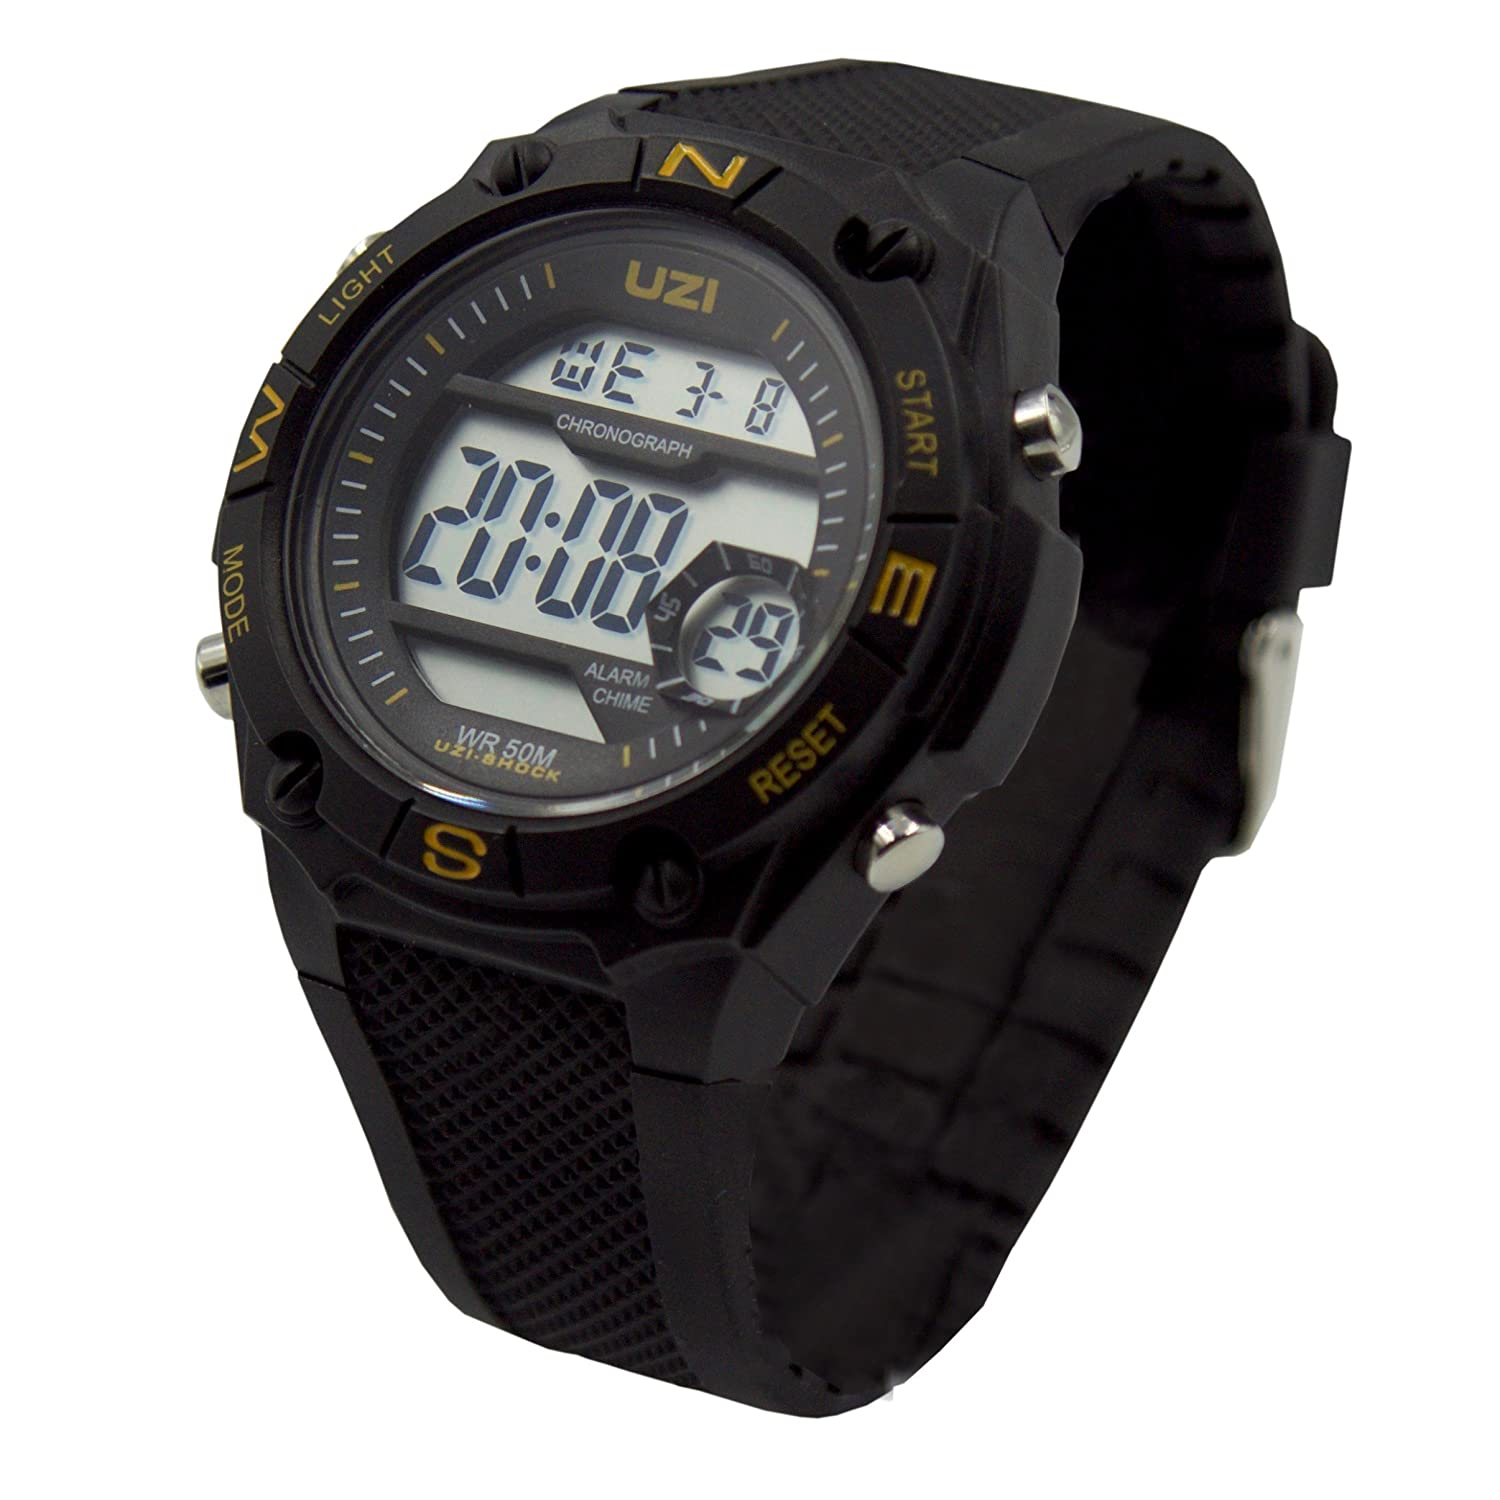 903b6d1d7 Amazon.com   UZI Shock Digital Watch   Sports   Outdoors